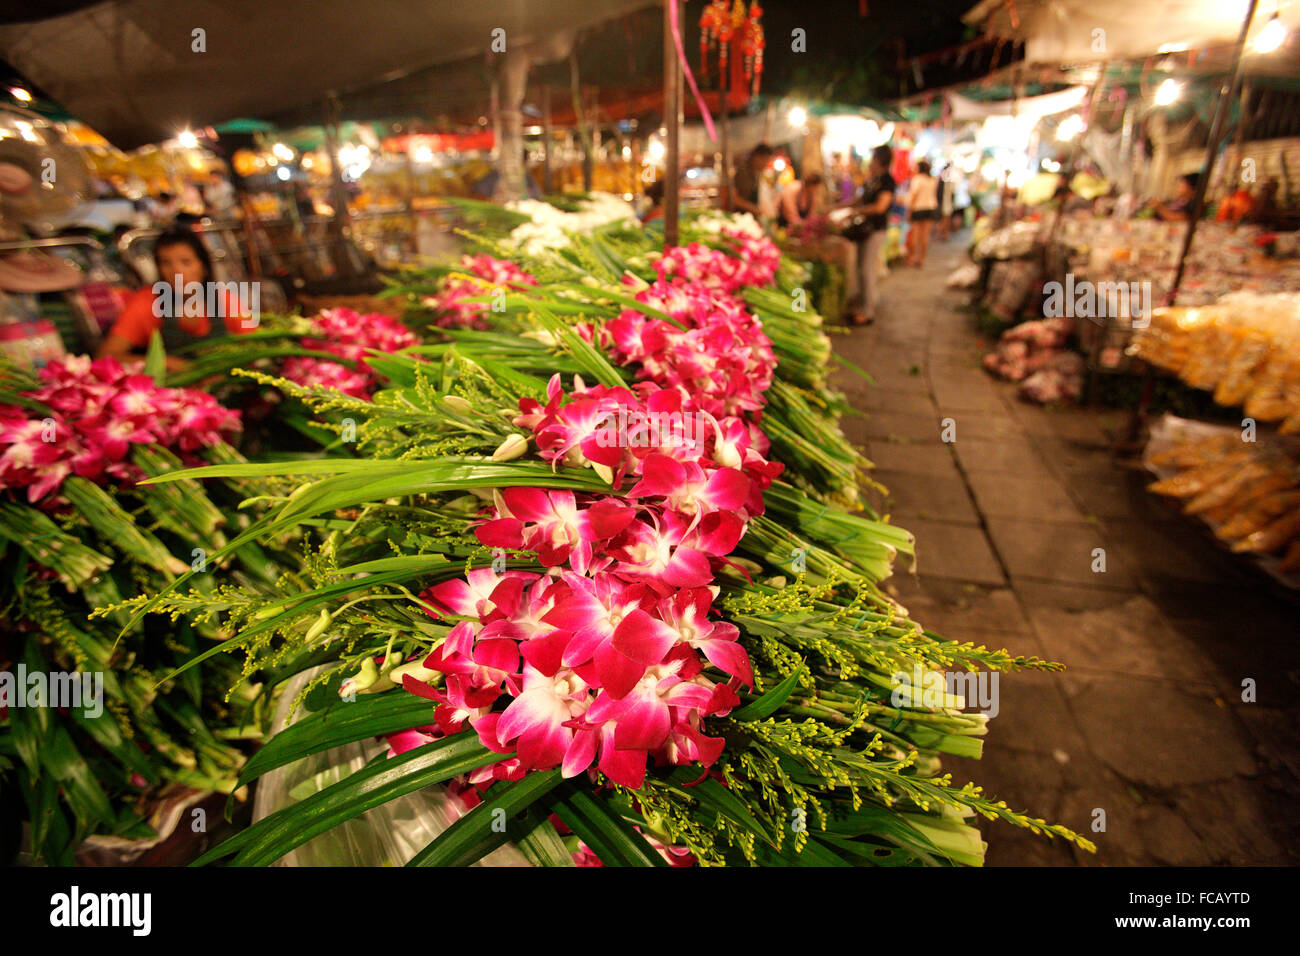 Flowers for sale, Chatuchak Market. Bangkok. Asia - Stock Image